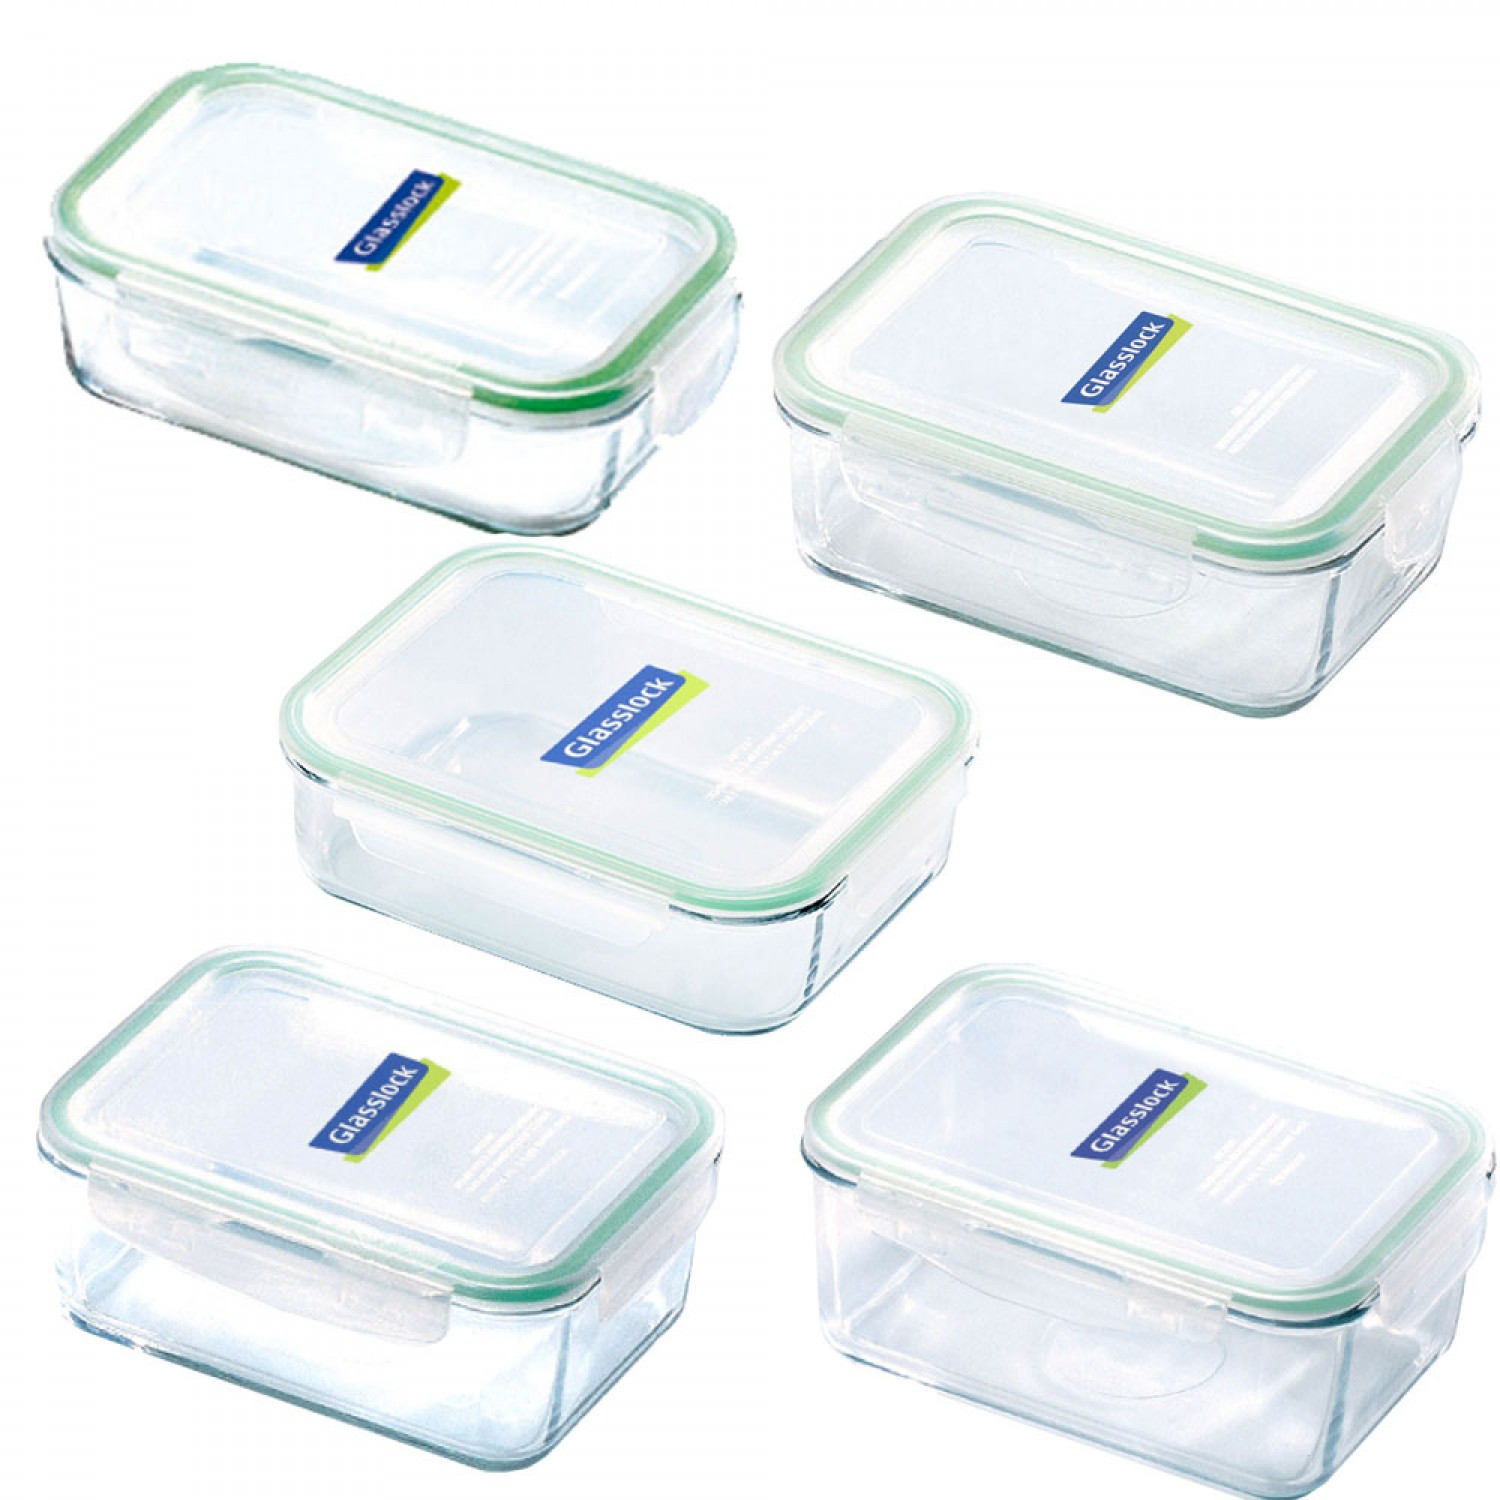 Glasslock Microwave & Food Container rectangular